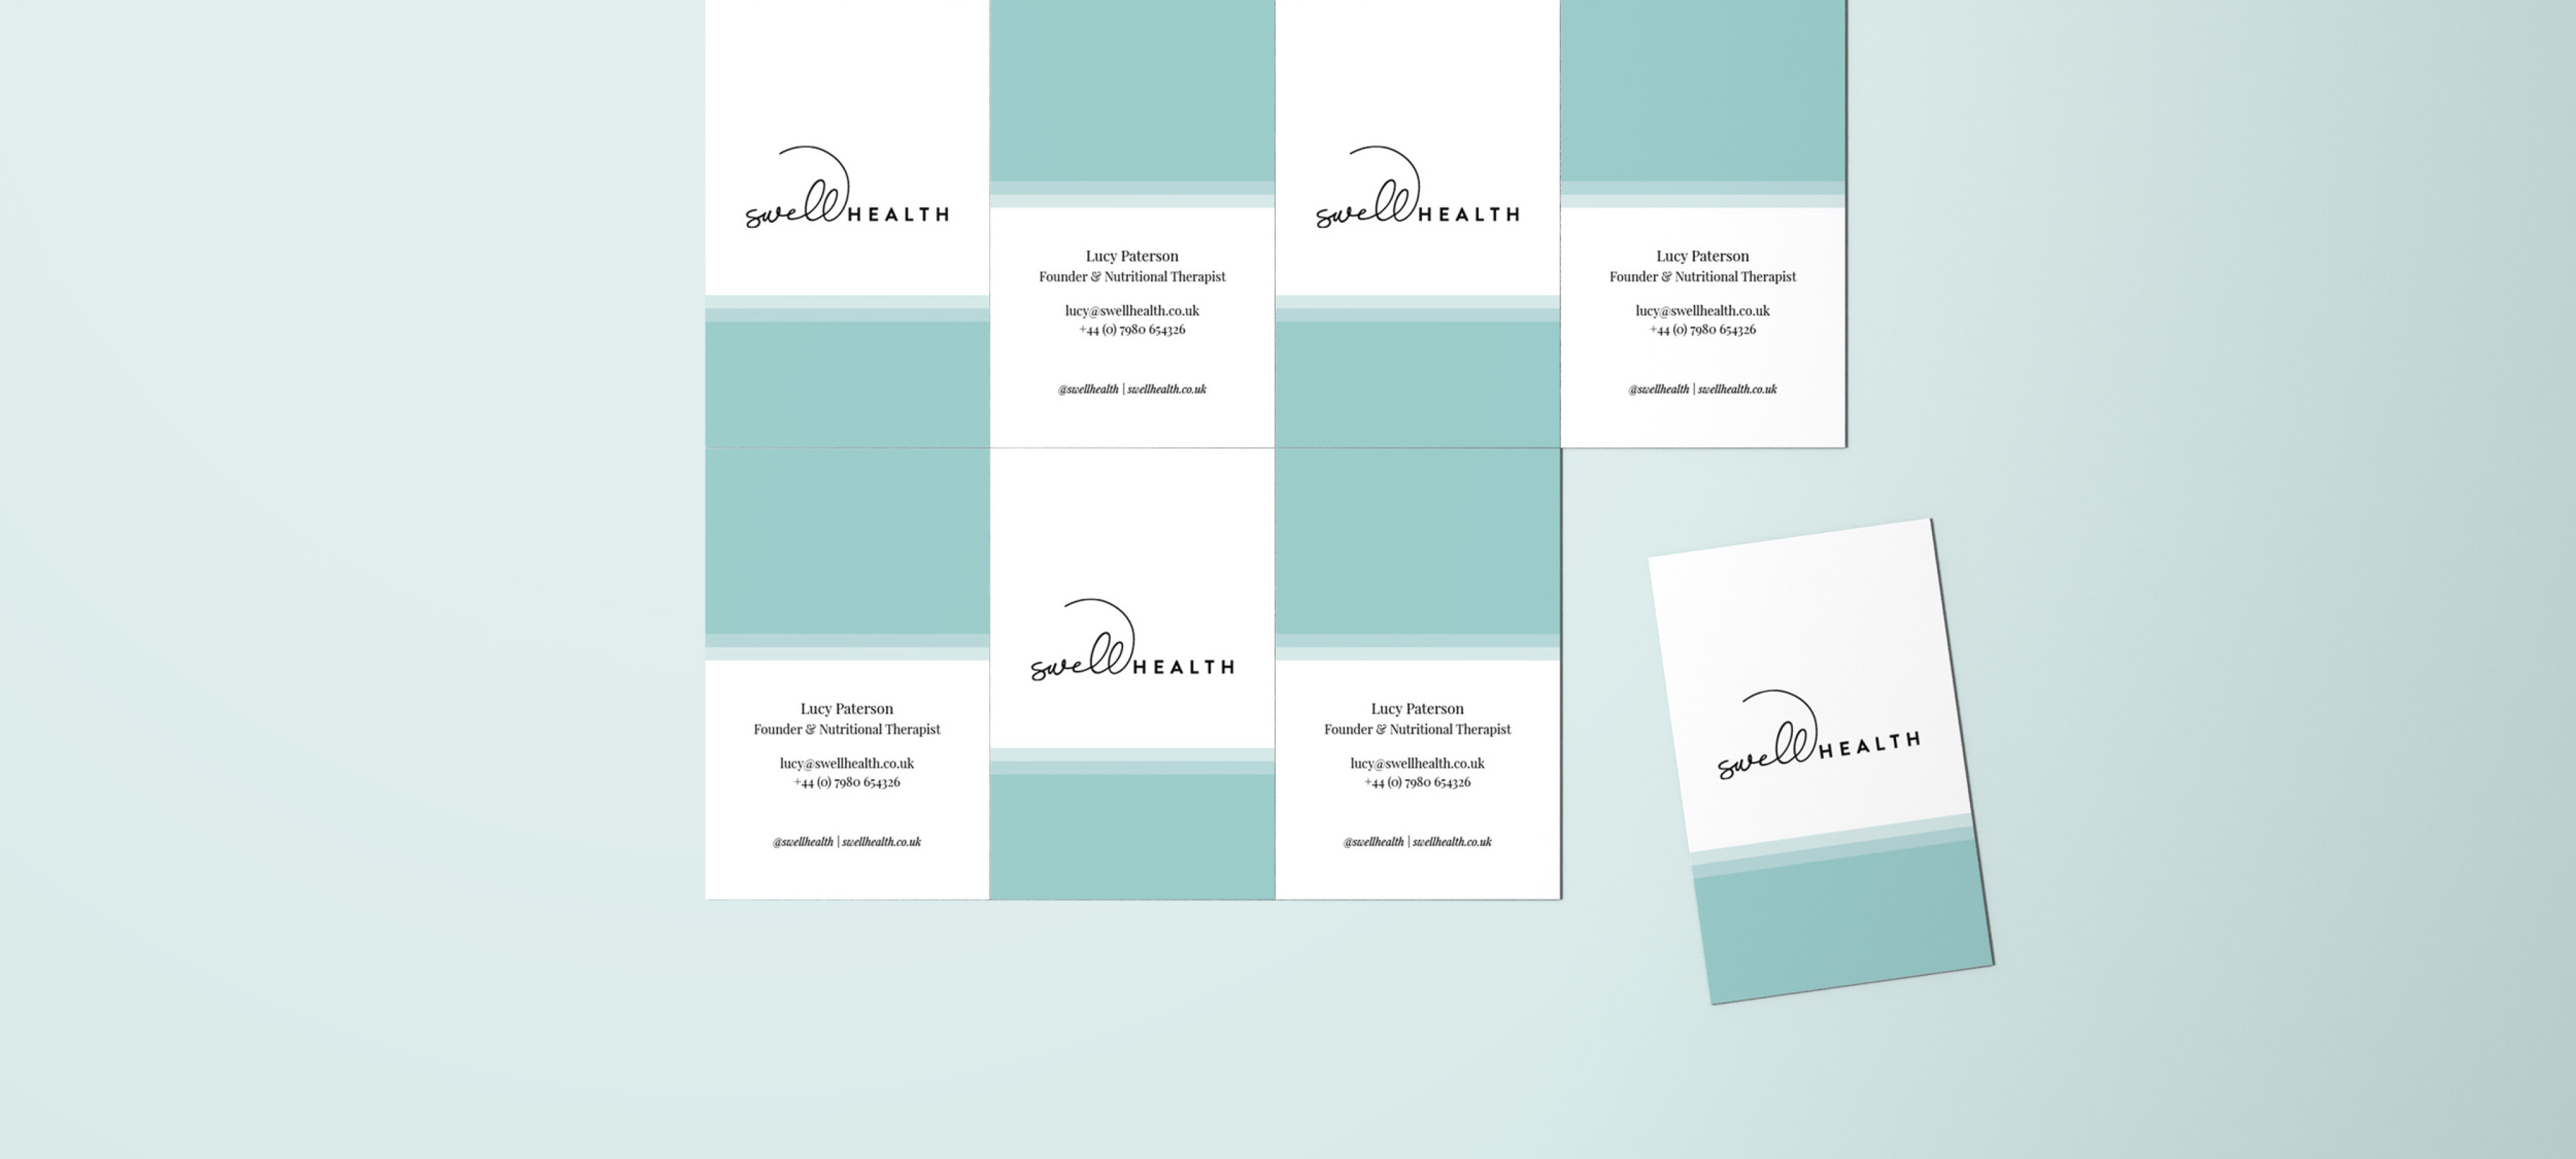 Inproe Brochure Design by Lynsay Biss at Cousin Branding